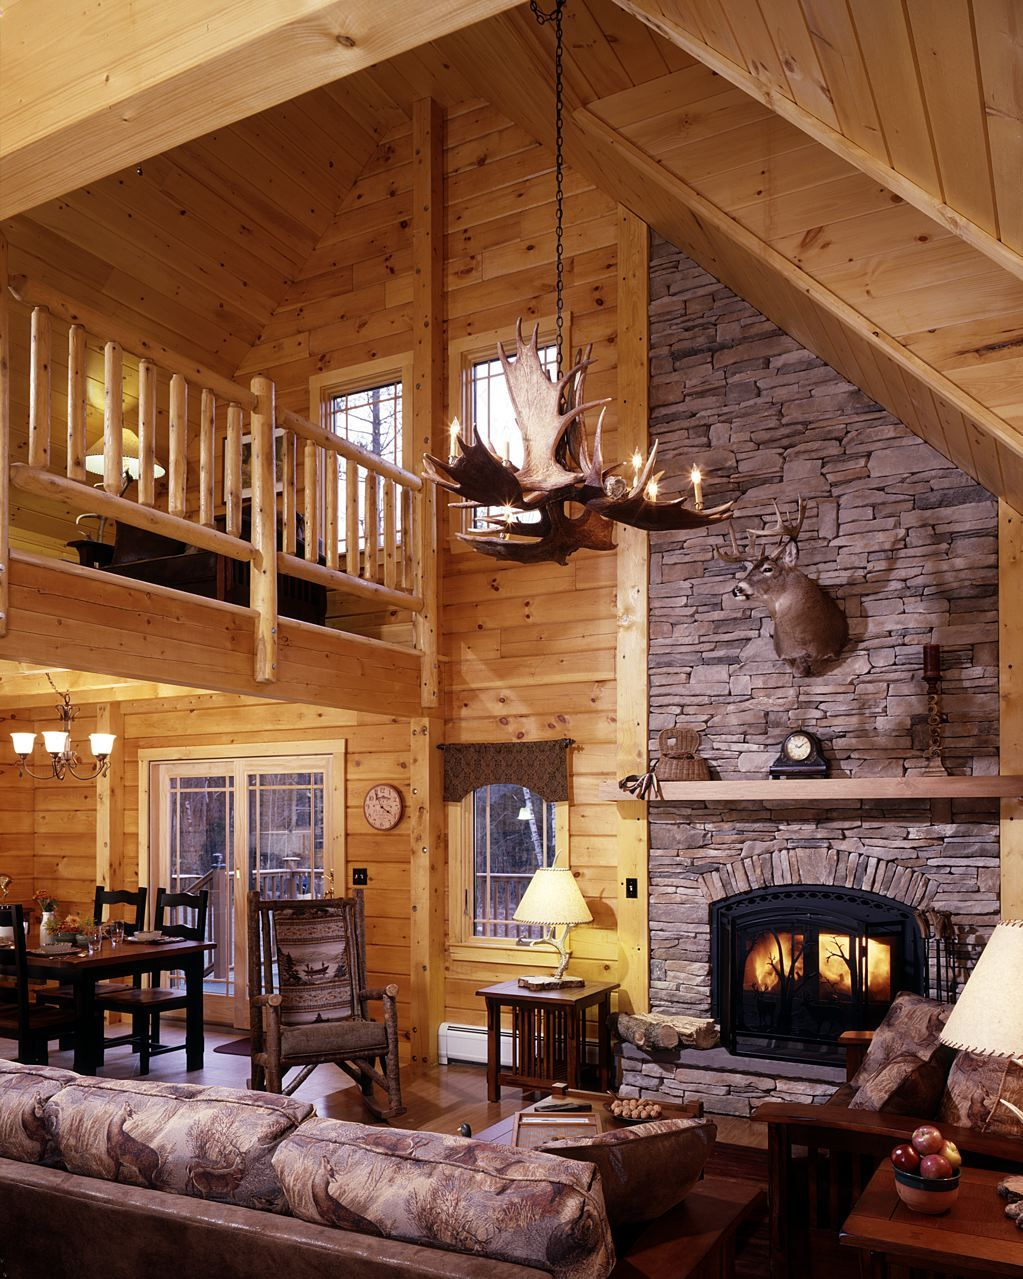 Living Room Decorating Ideas Log Cabin pictures of log cabin homes inside and out | field & stream to